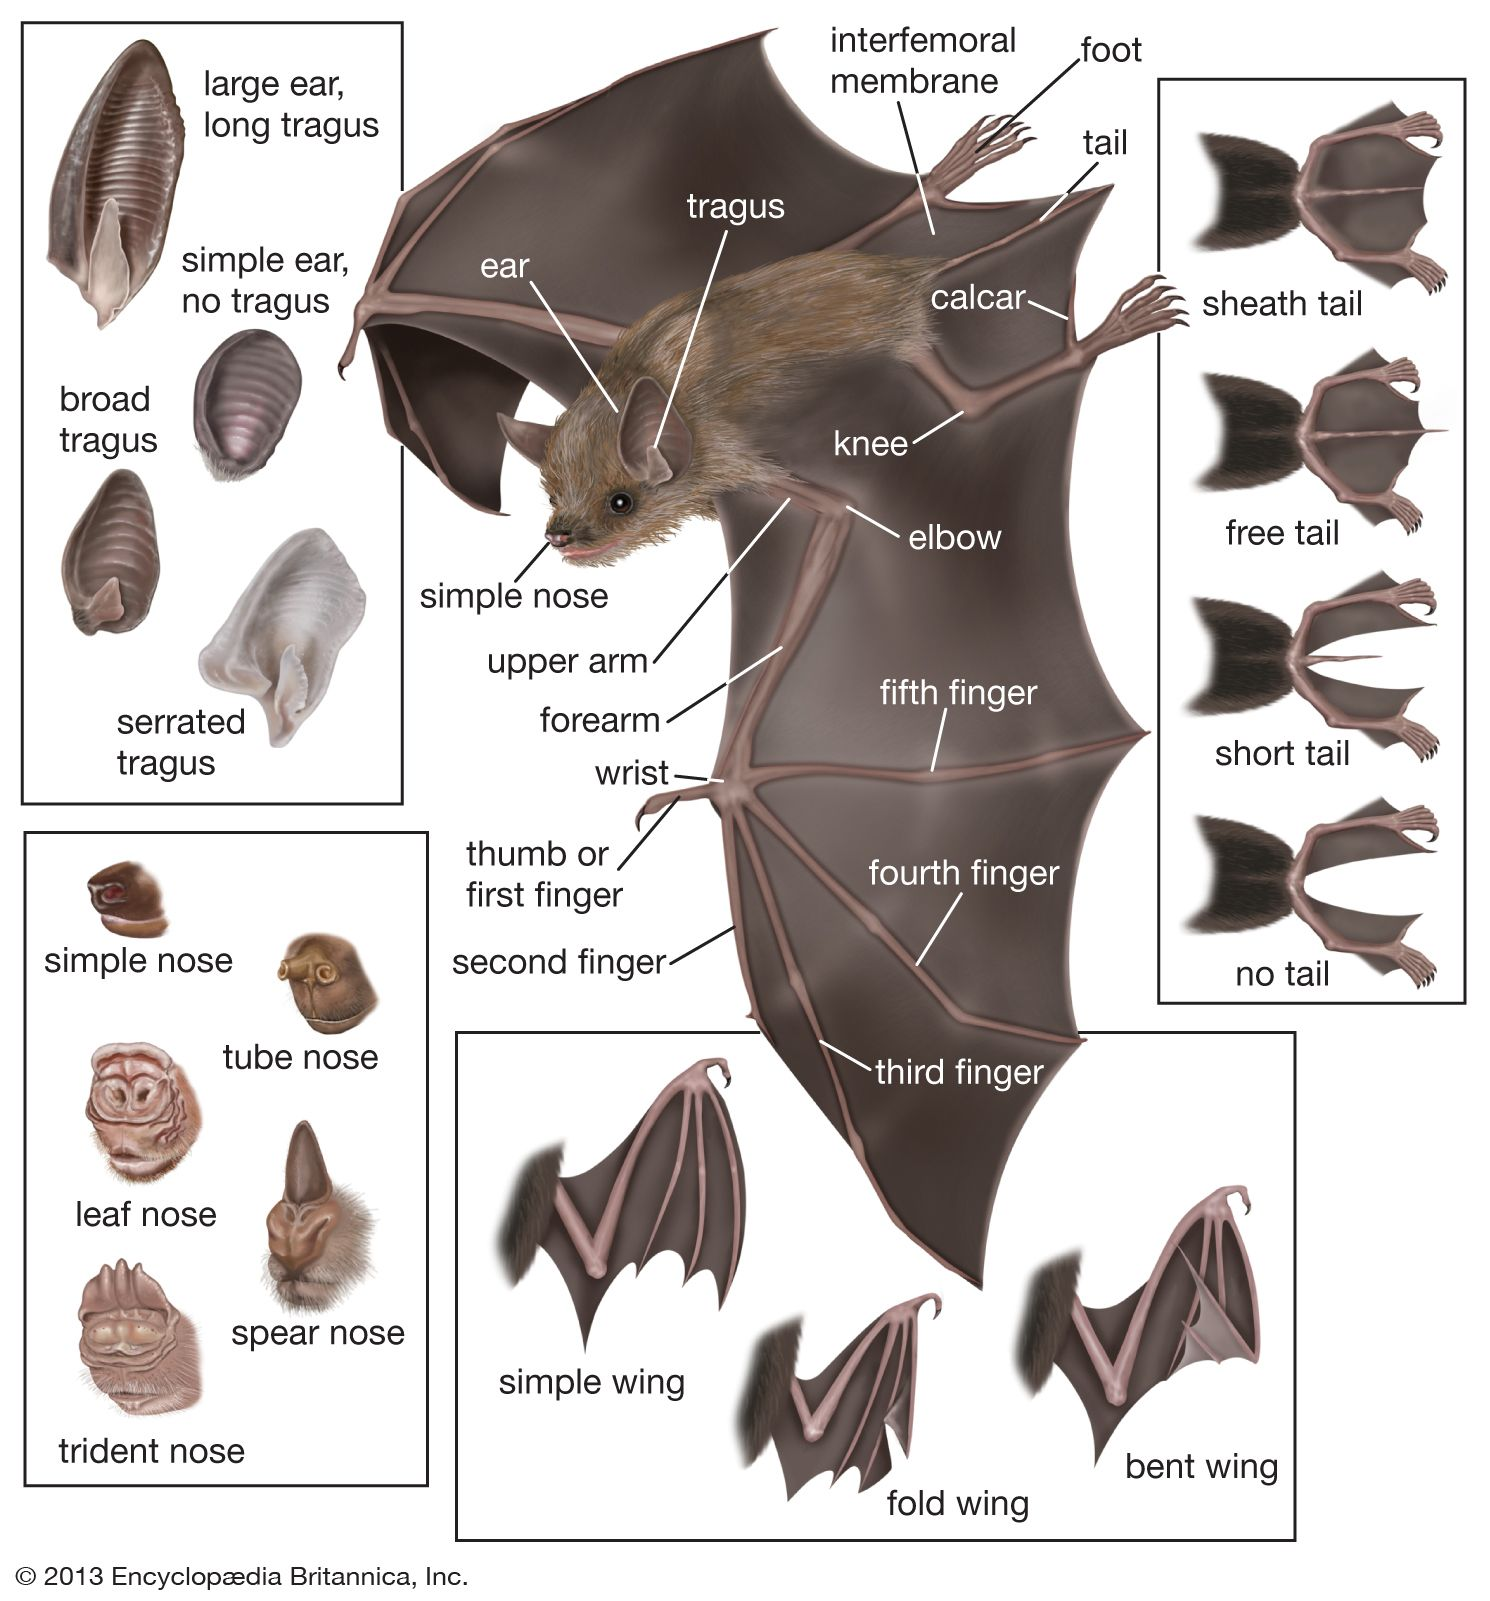 Features of typical microchiropteran bats pinterest features of typical microchiropteran bats pooptronica Images